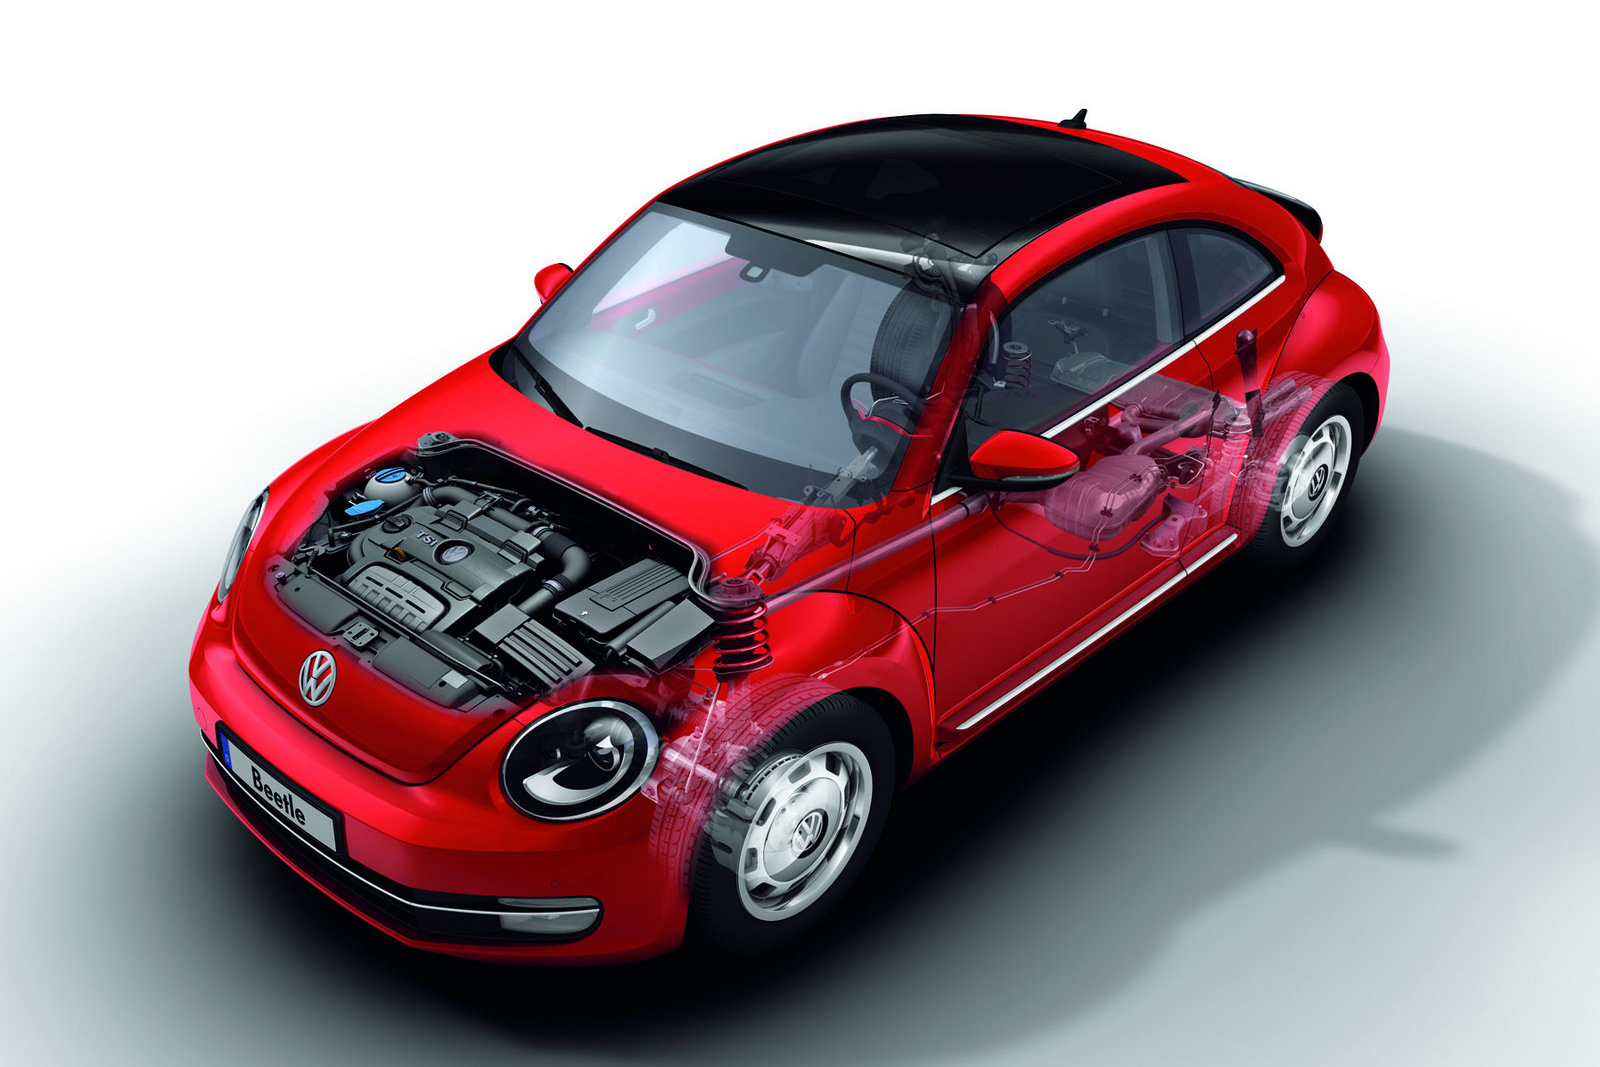 Volkswagen Details New Euro 6 Engines for Beetle Coupe and Cabrio - autoevolution